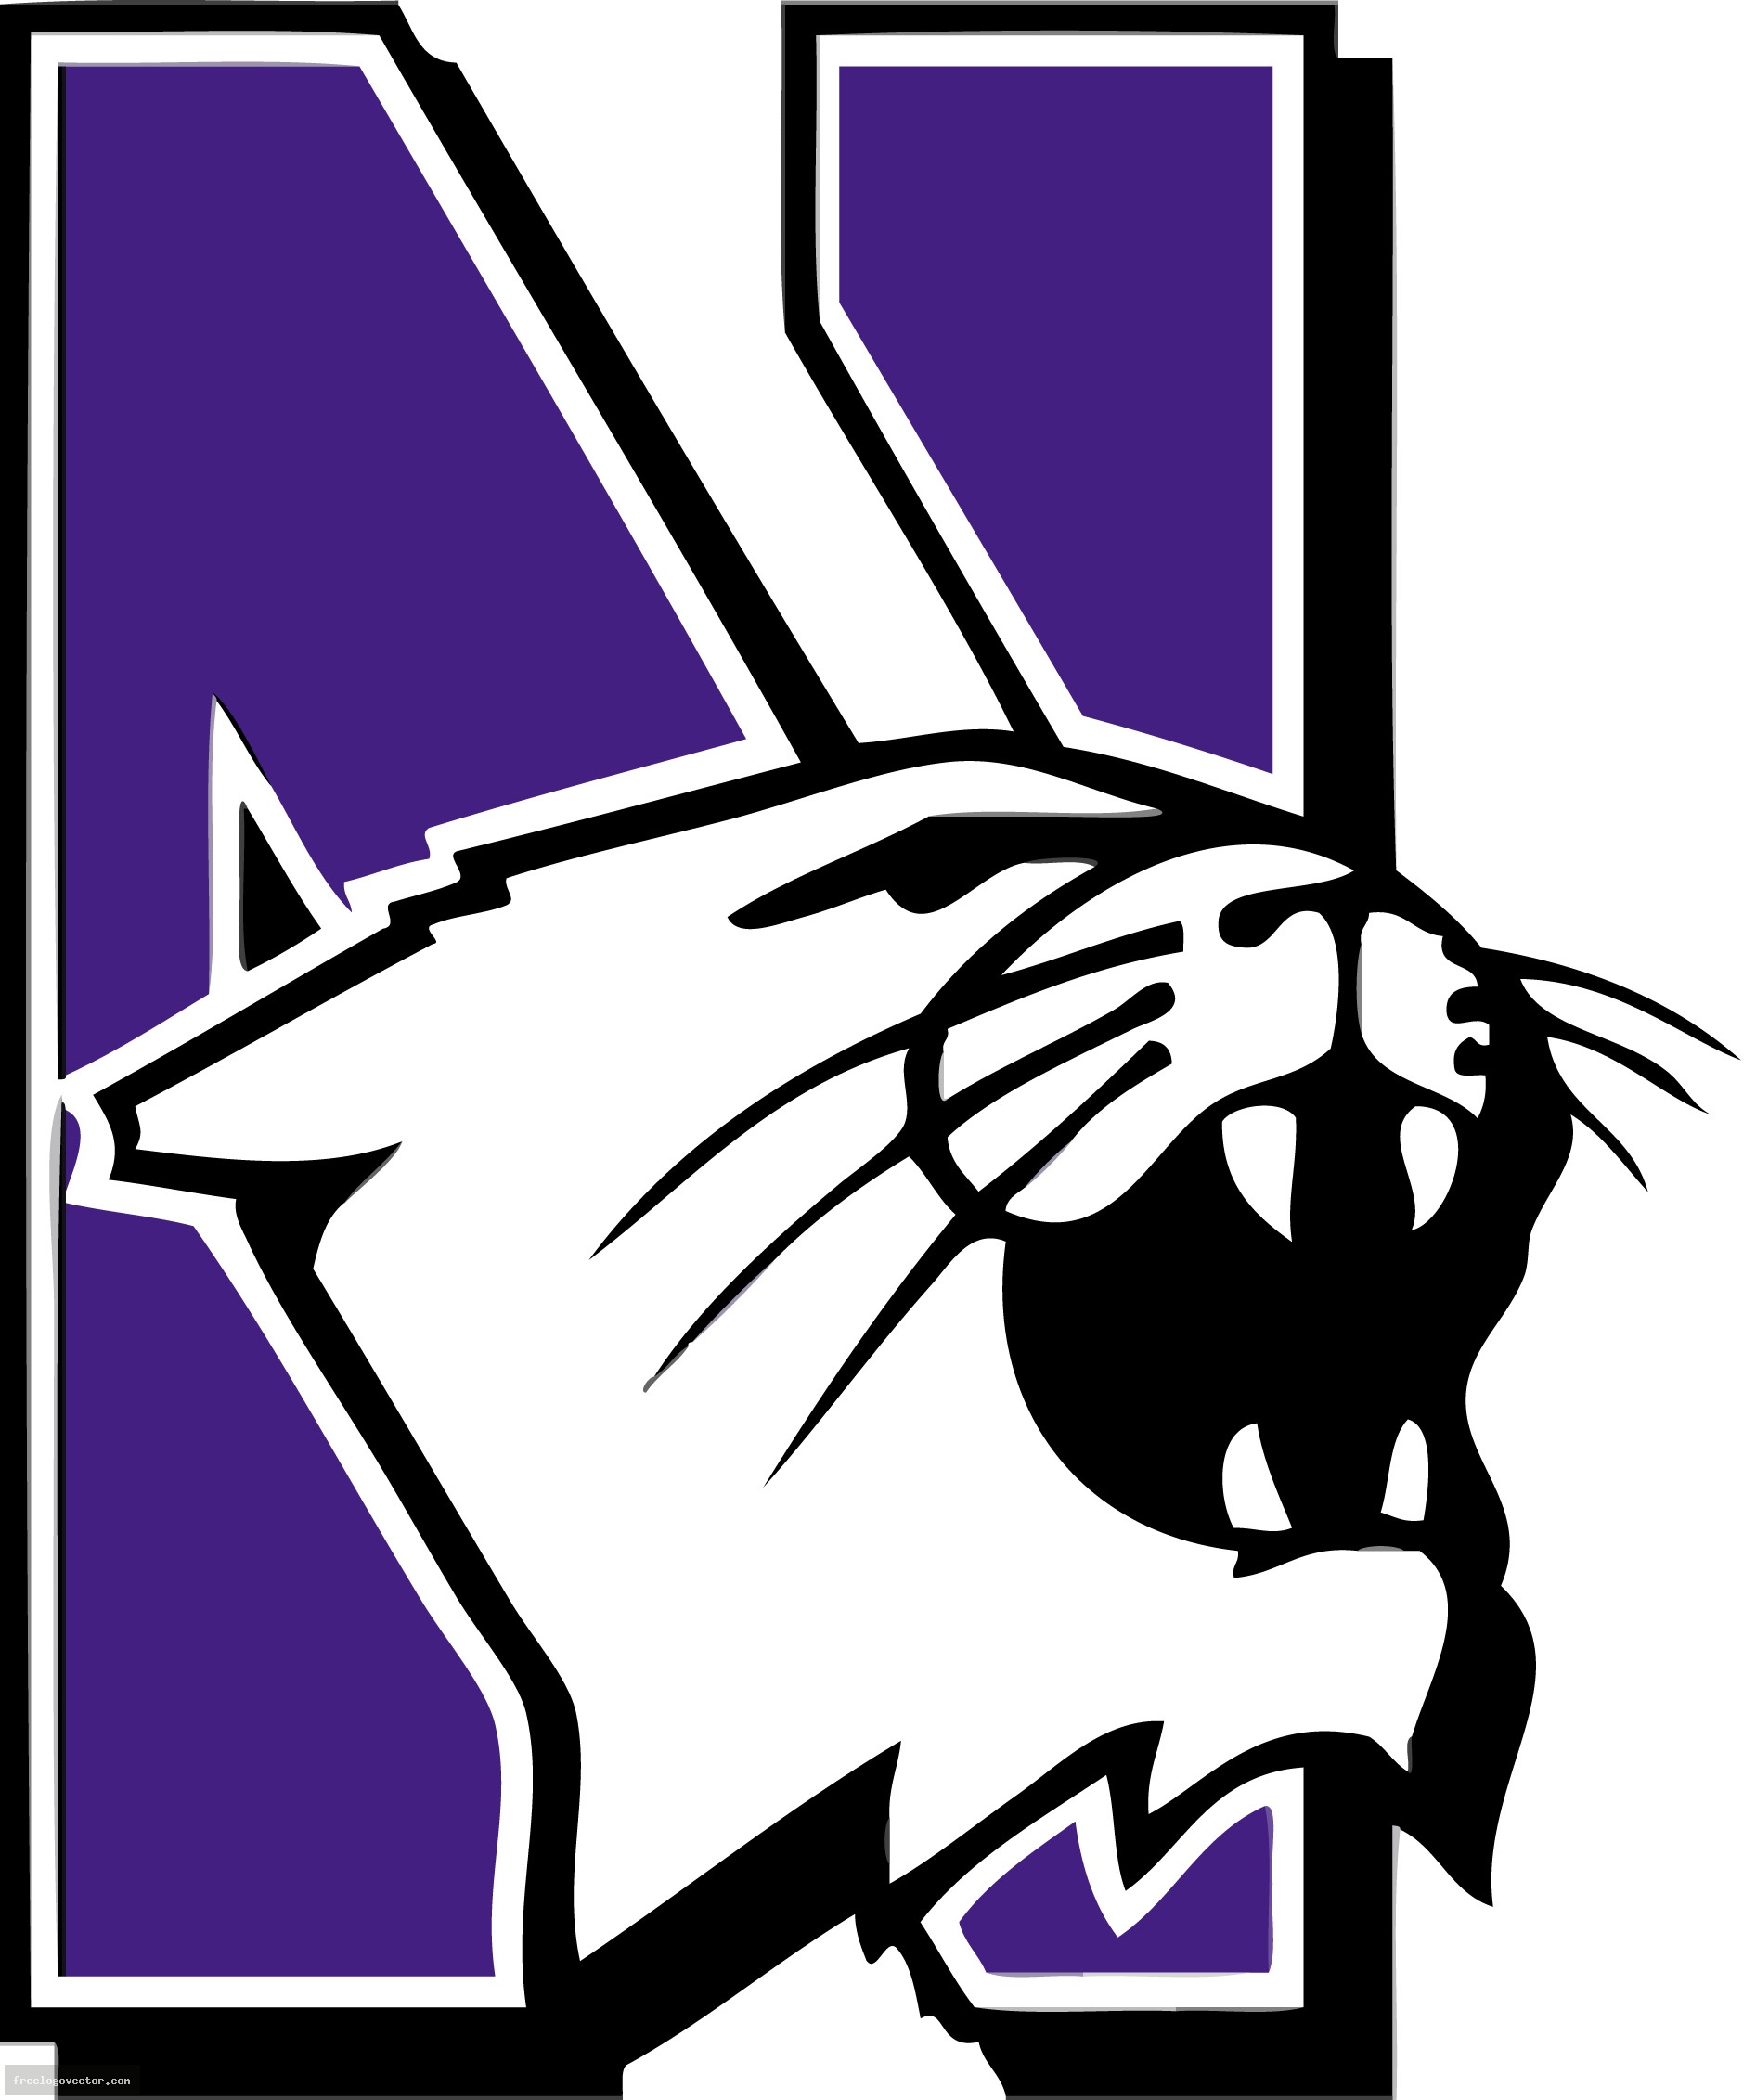 northwestern university academic recruiting network plexusscom